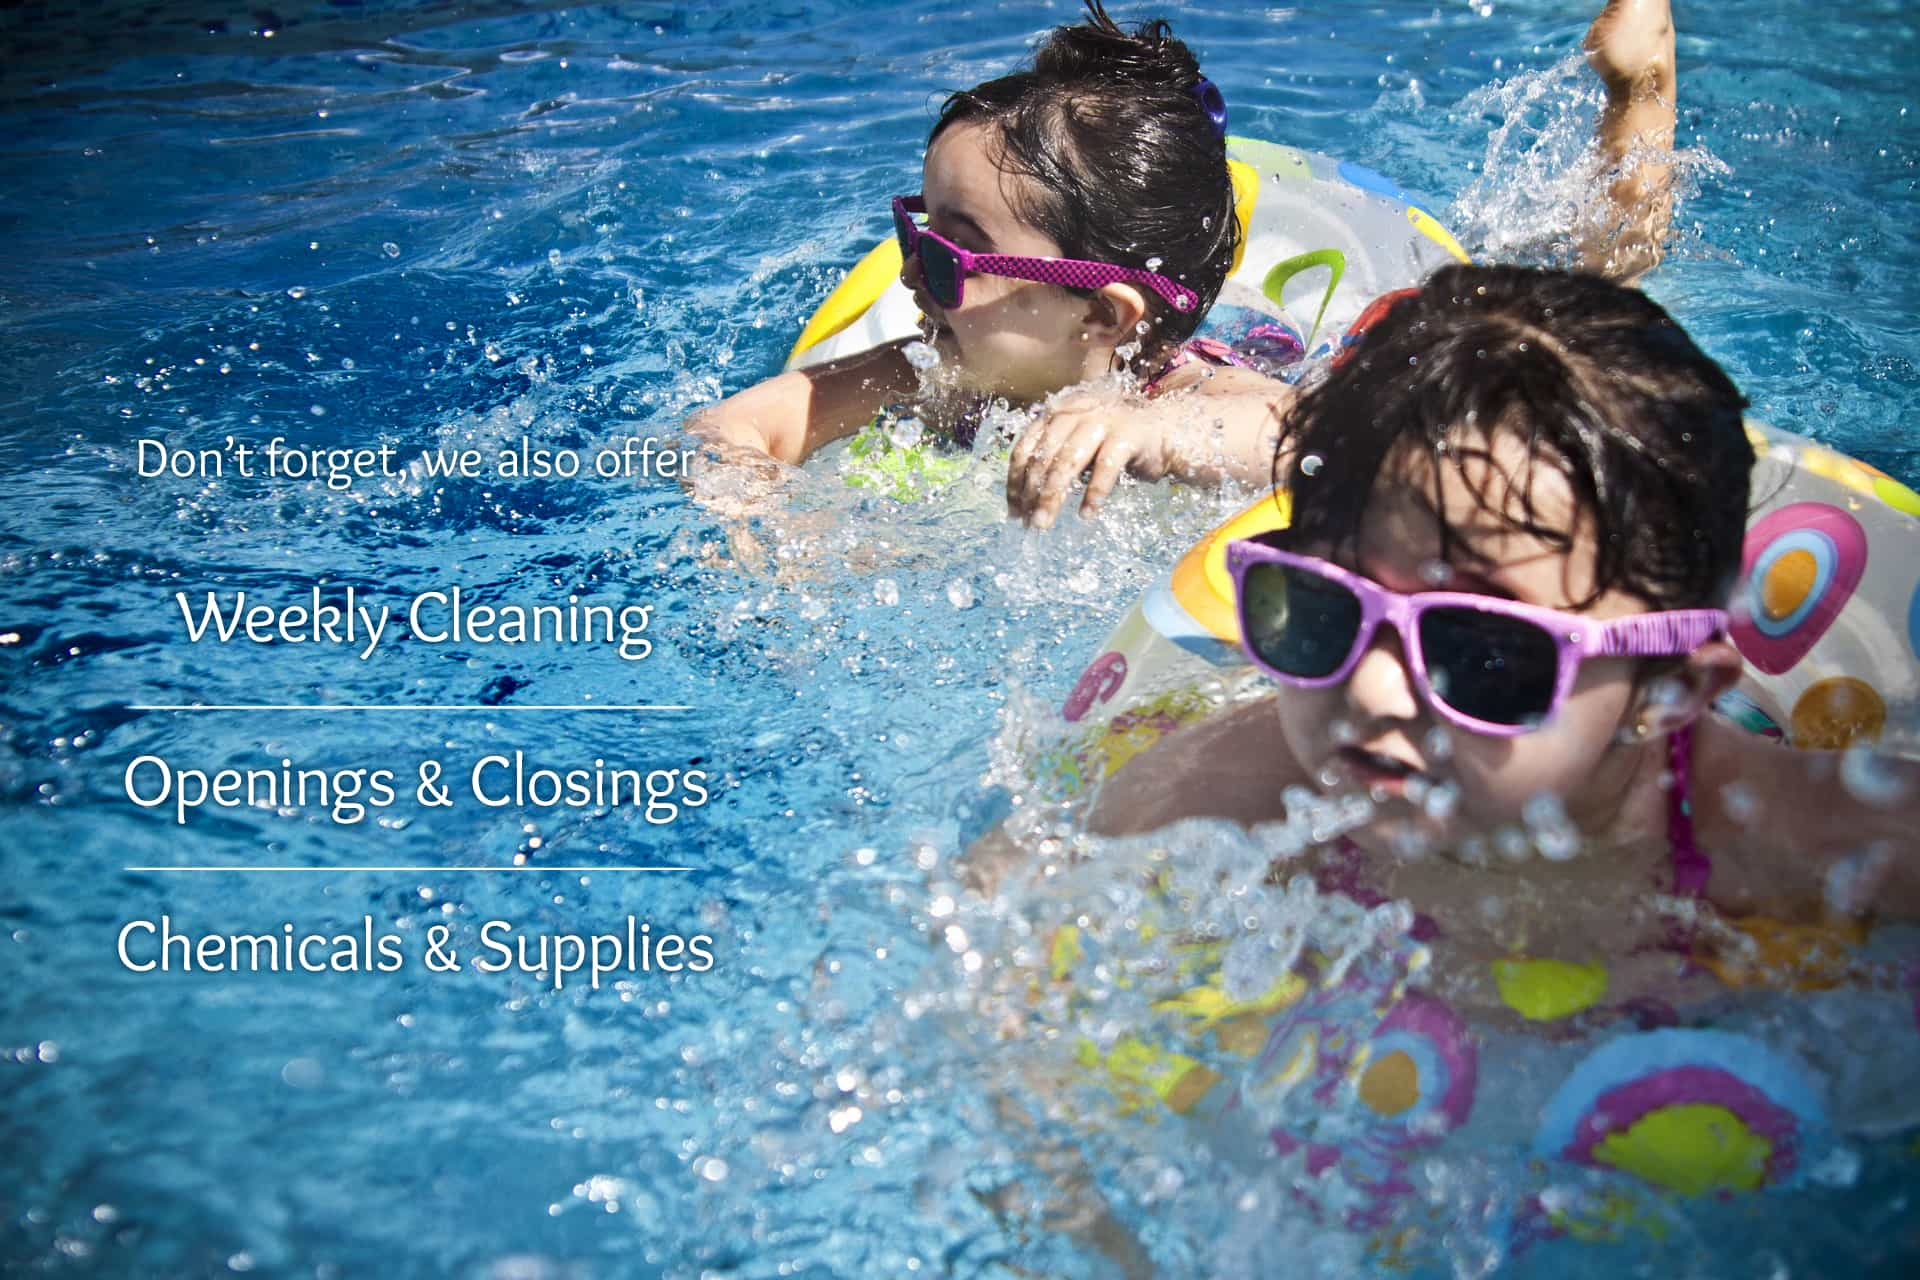 Weekly maintenance and pool chemical supply from Peek Pools